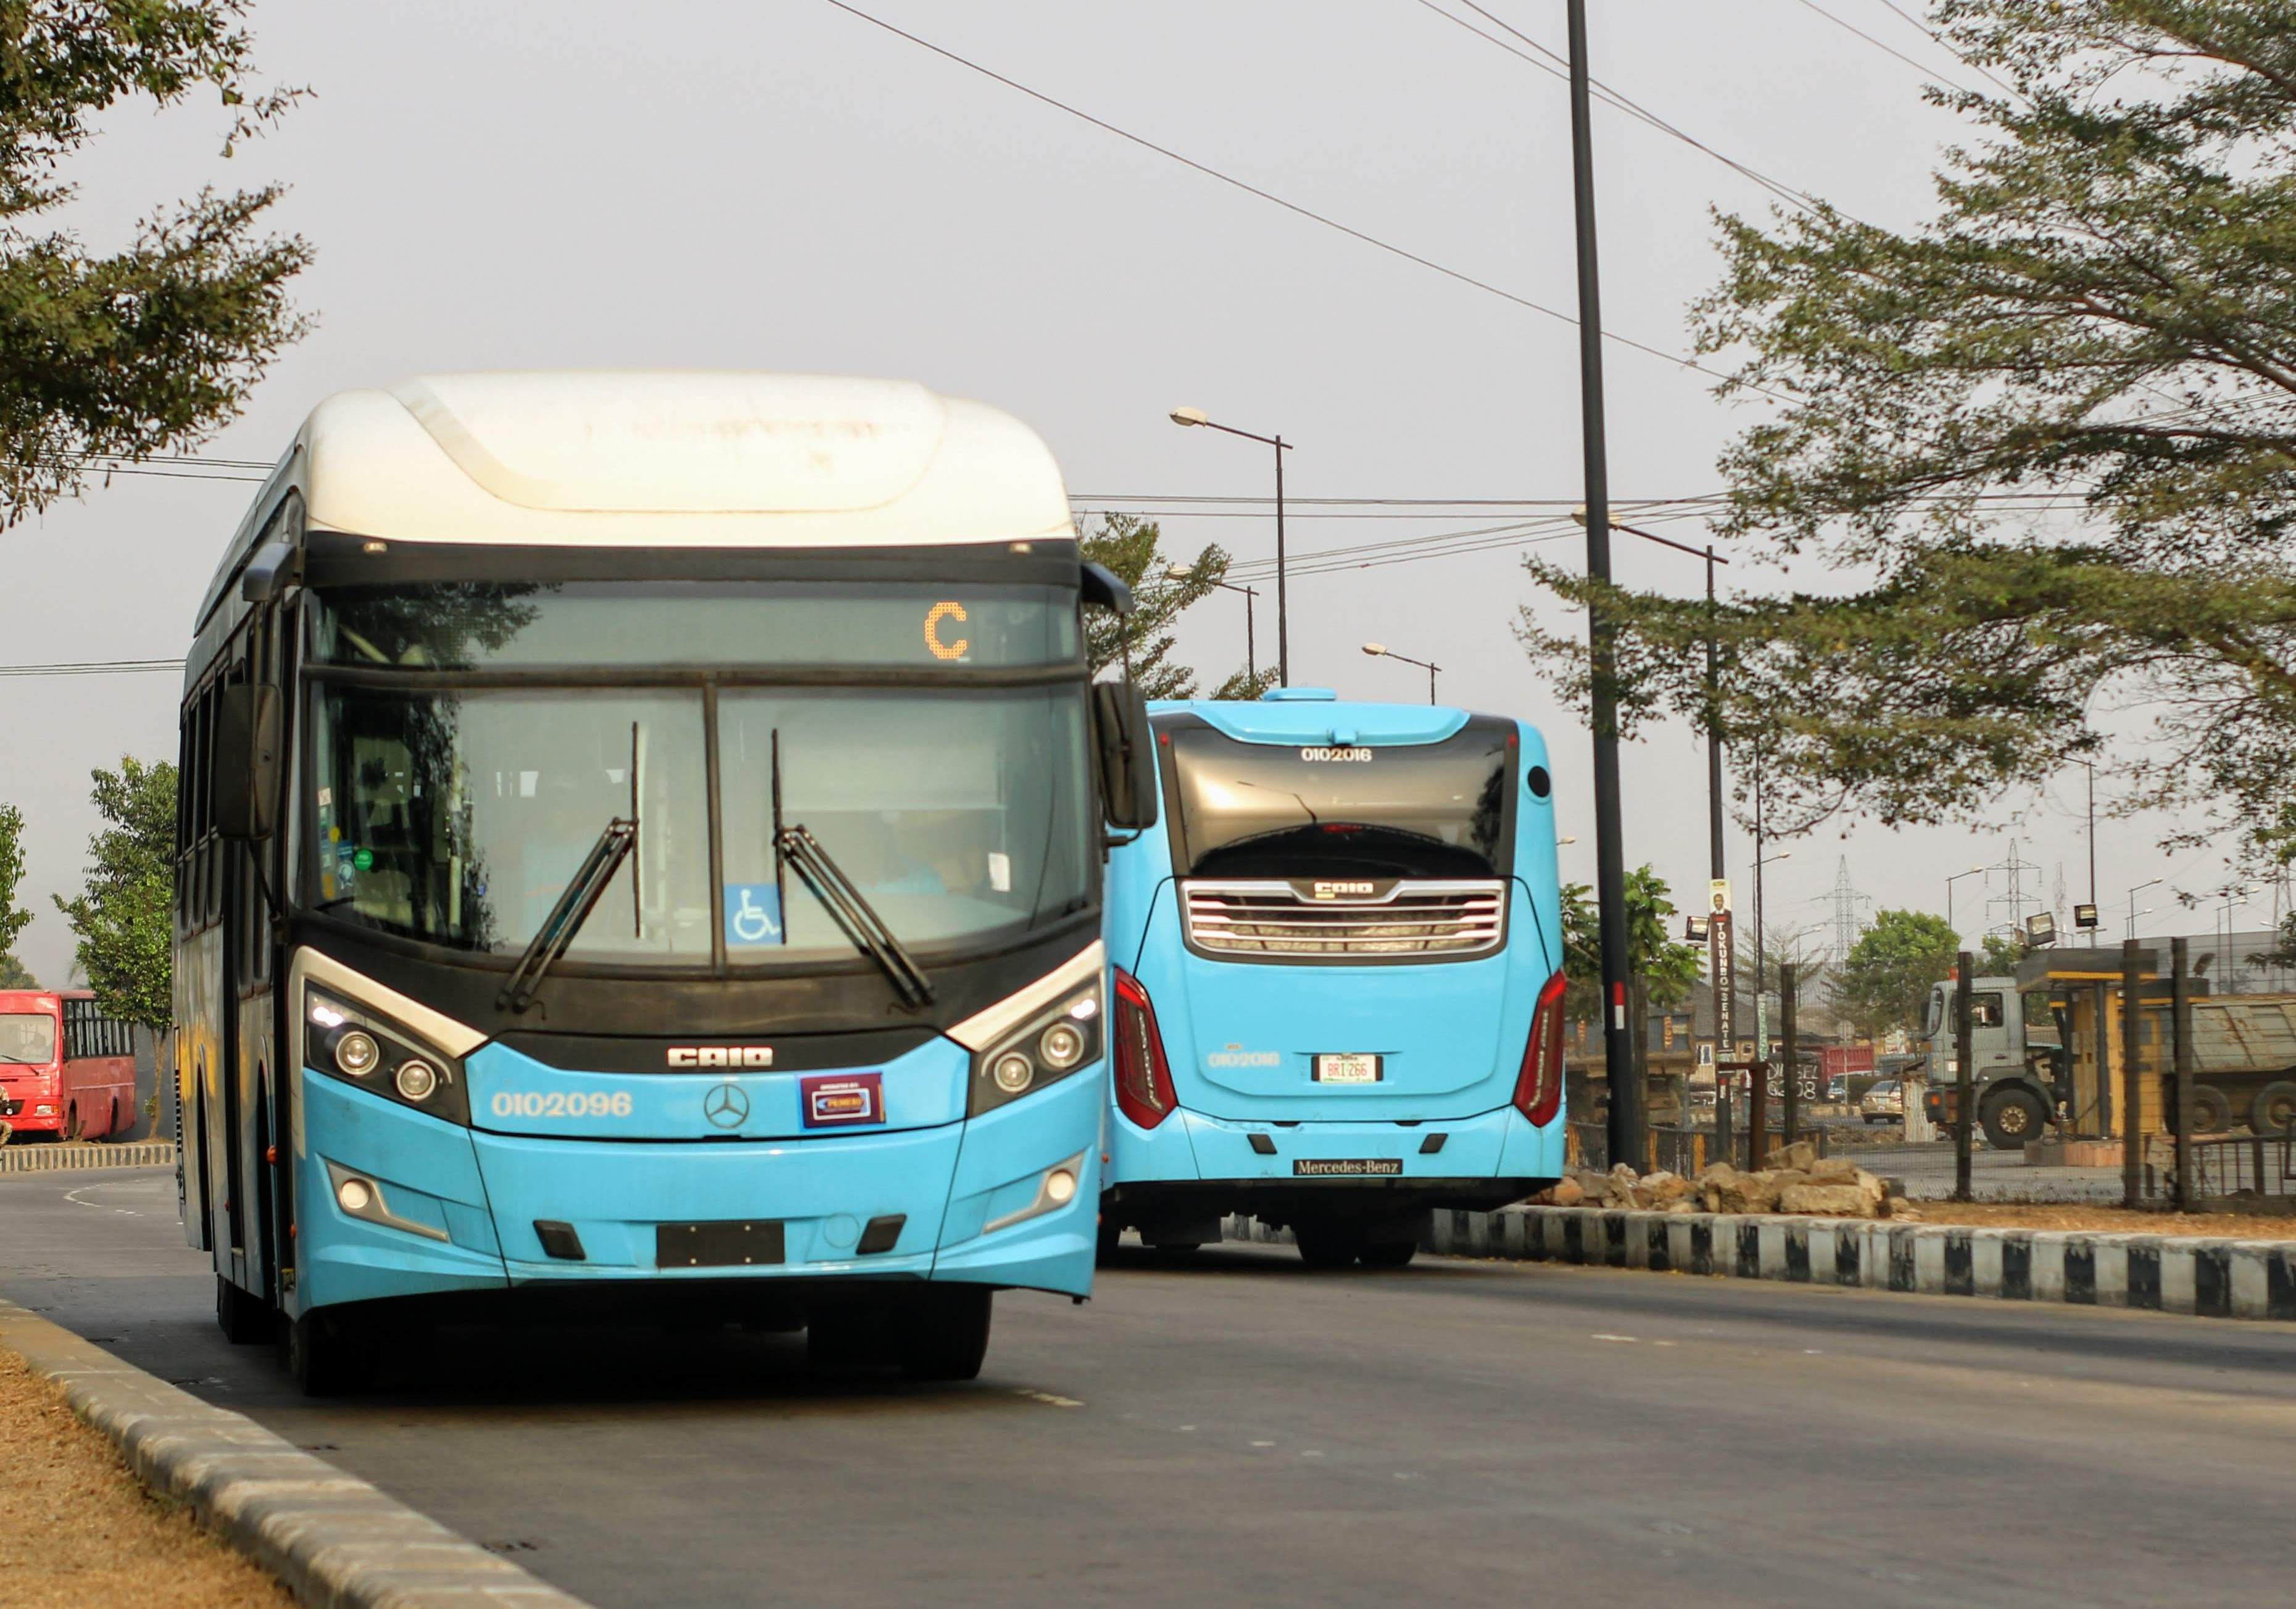 Embrace Cowry Cards for better service, BRT operator urges commuters